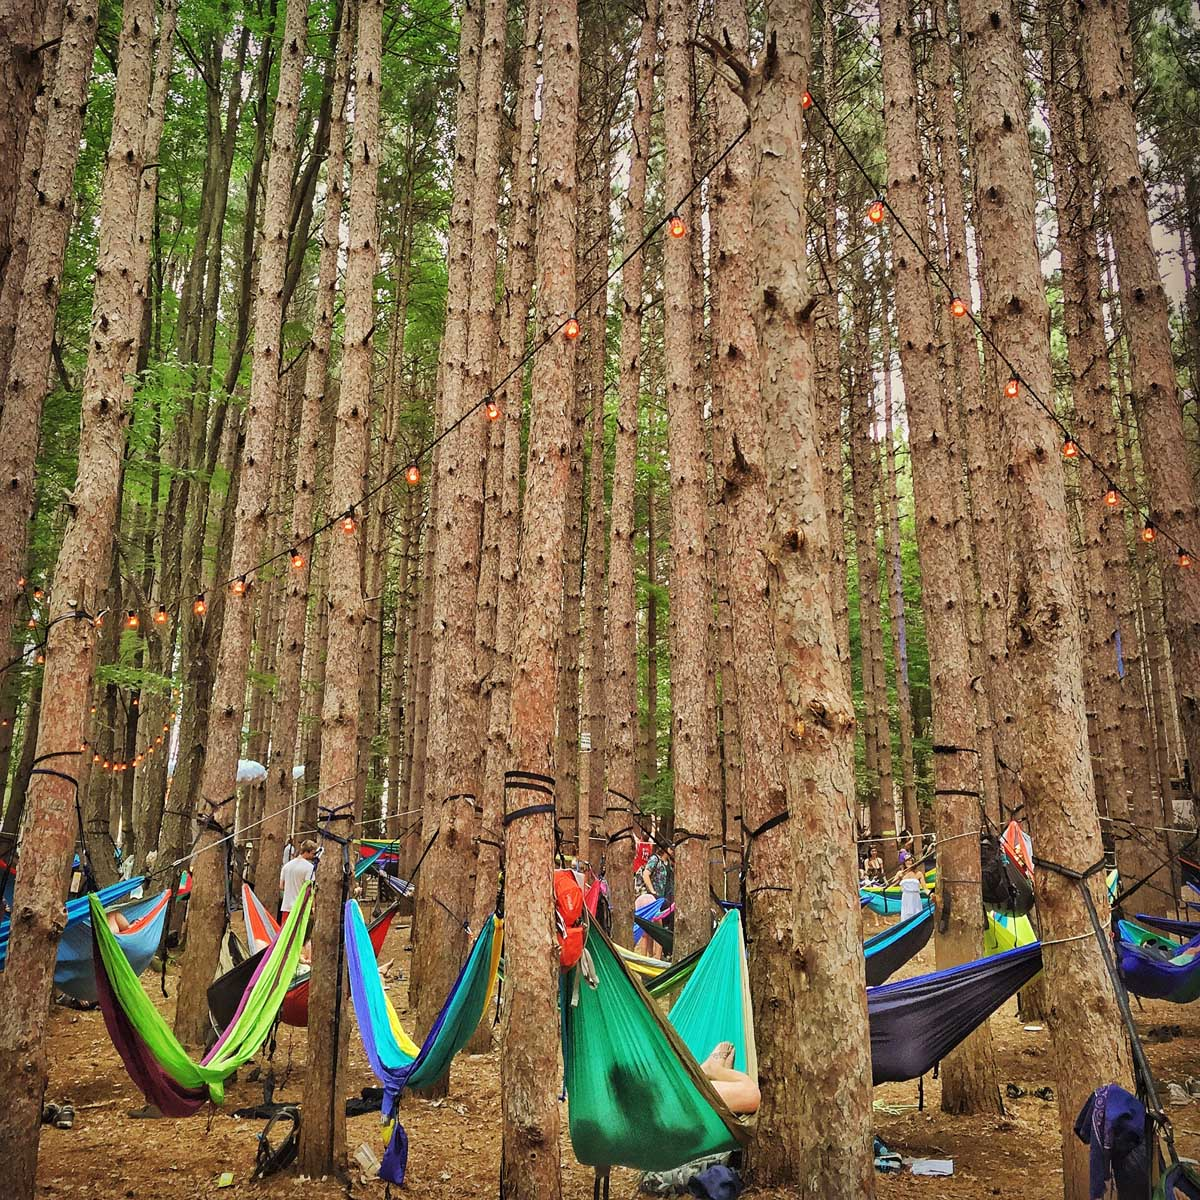 Electric Forest Music Festival features a forest of hammocks to chill in. Courtesy of @HammockLiving